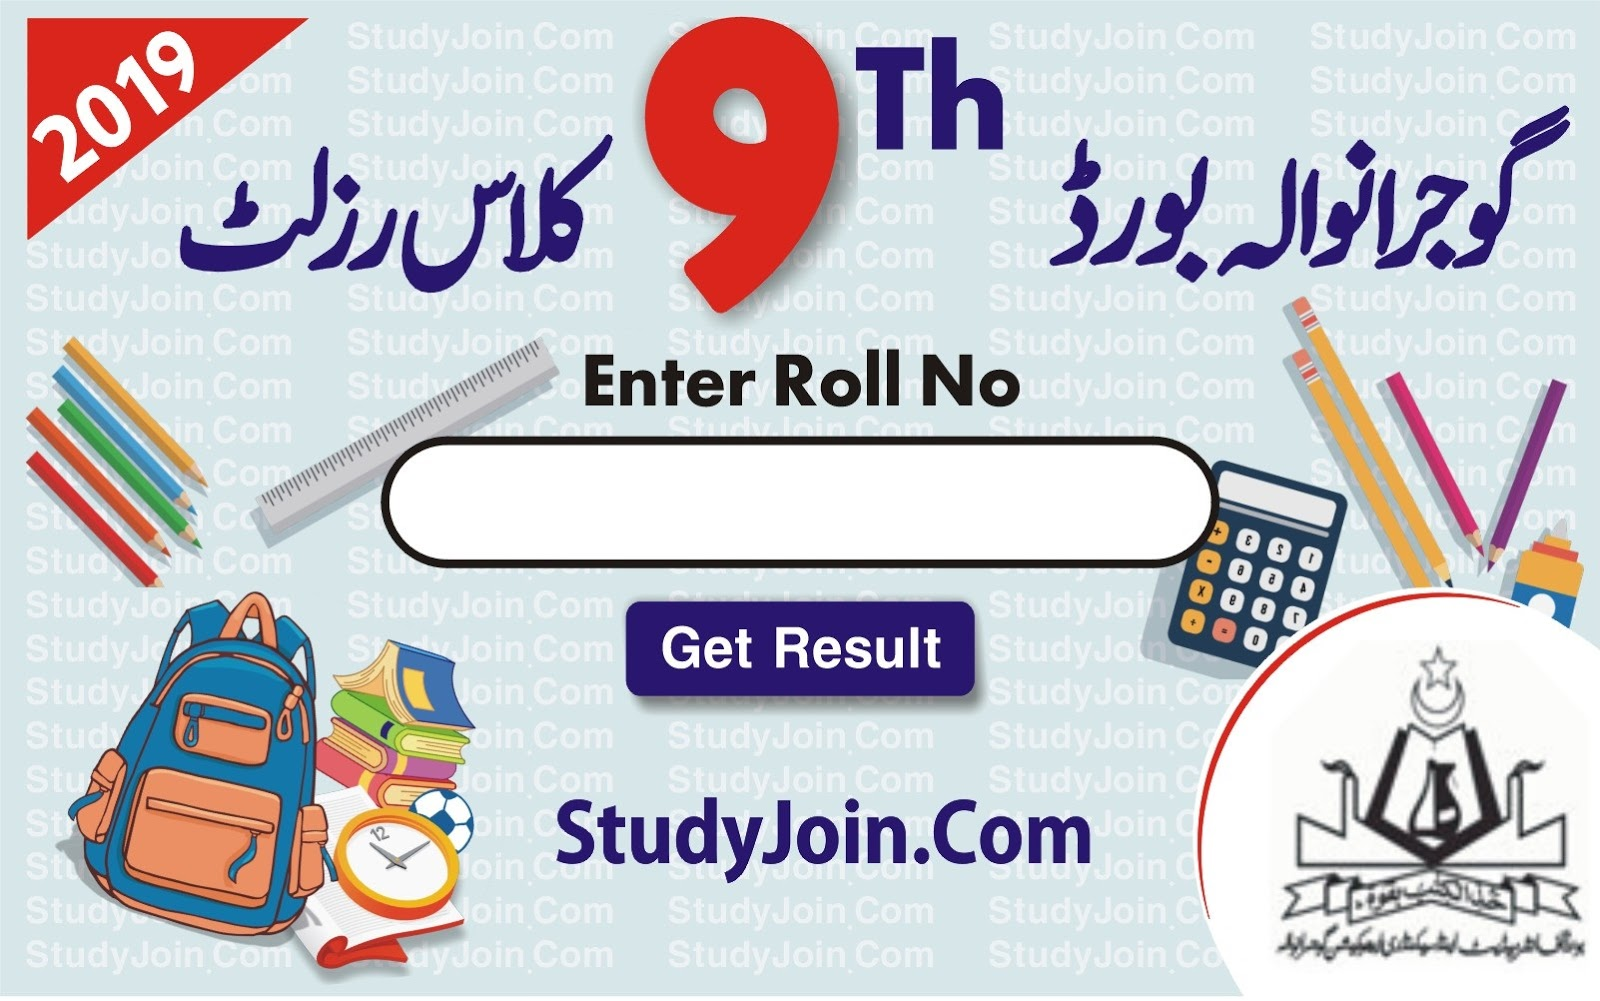 BISE Gujranwala matric result 2019, 9th class result 2019 Gujranwala board, bise Gujranwala 9th result 2019 enter roll number, bise Gujranwala 9th result 2019 enter roll number, 9th class result 2019 Gujranwala board, 9th class result 2019 Gujranwala board, bise Gujranwala result 2019, bise Gujranwala 9th result 2019, Hamari web Gujranwala board result 2019, be educated Gujranwala board result 2019 9th class, urdupoint BISE Gujranwala 9th result 2019, BISE Gujranwala 9th result 2019 enter roll number, Gujranwala board result 2019, BISE Gujranwala SSC Part 1 nine class, Matric Science and Arts Result 2019, ilmkidunya result 2019, ilm ki duniya result 2019 12th class